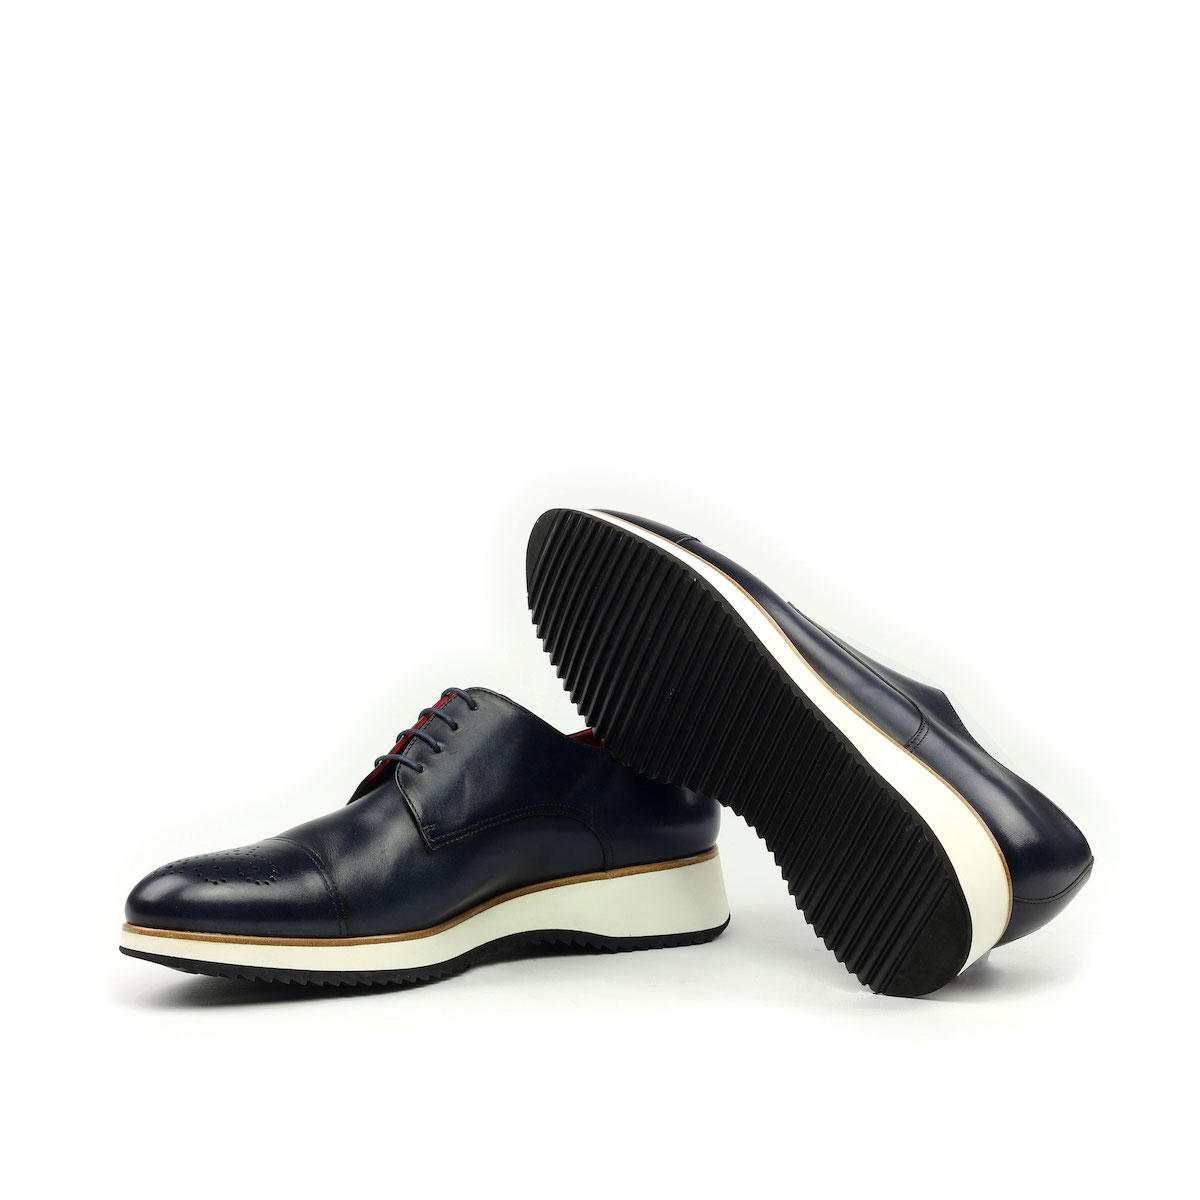 Manor of London 'The Derby'  Navy Painted Calfskin w/ Running Sole Shoe Luxury Custom Initials Monogrammed Bottom & Top Side View